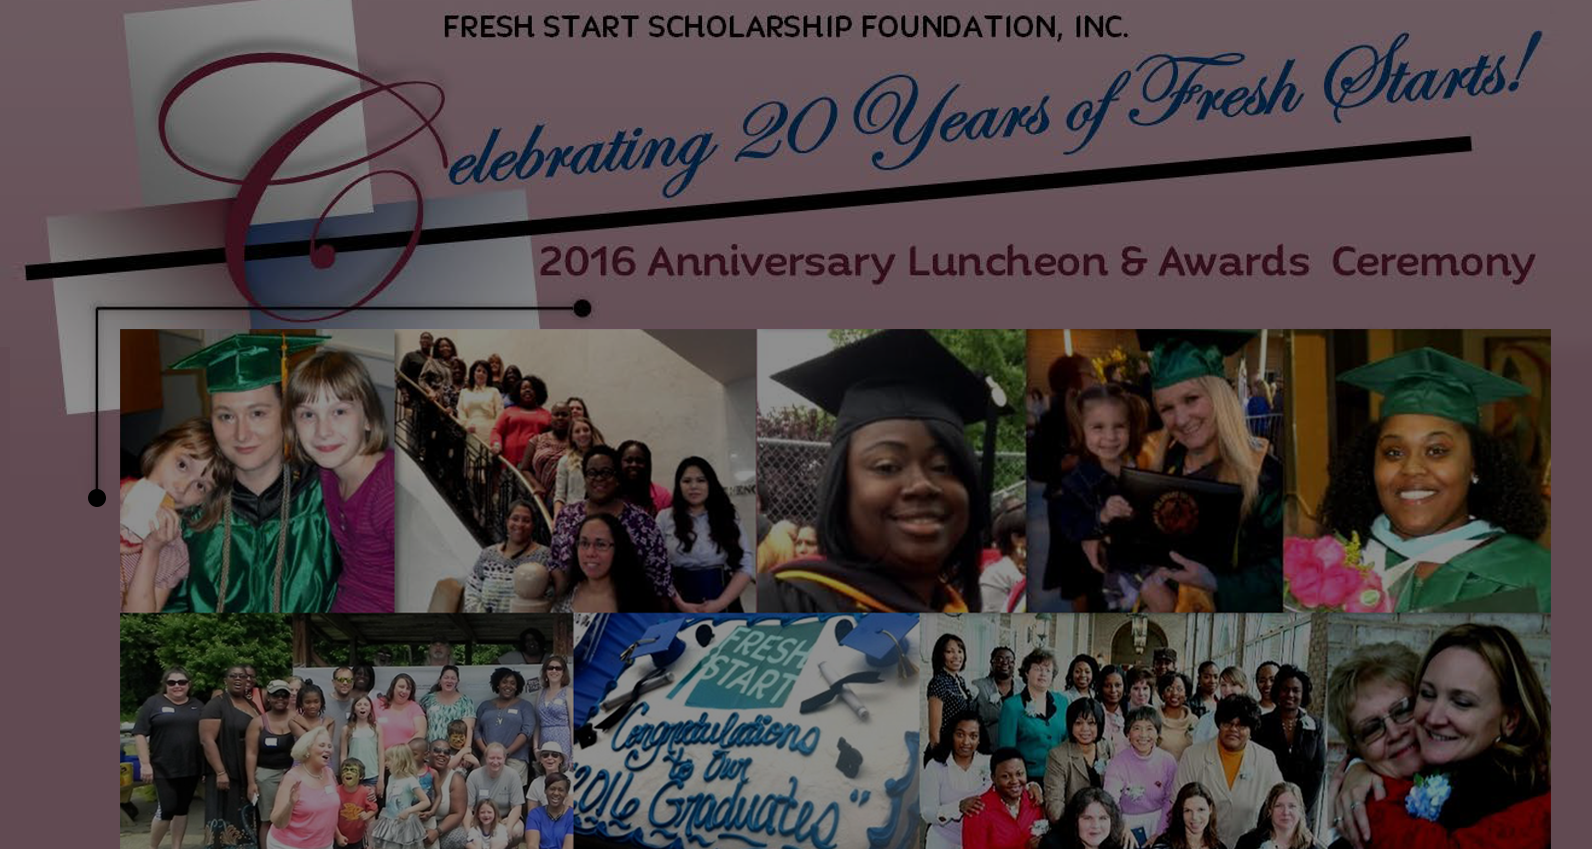 Fresh Start 20th Anniversary Luncheon & Awards Ceremony